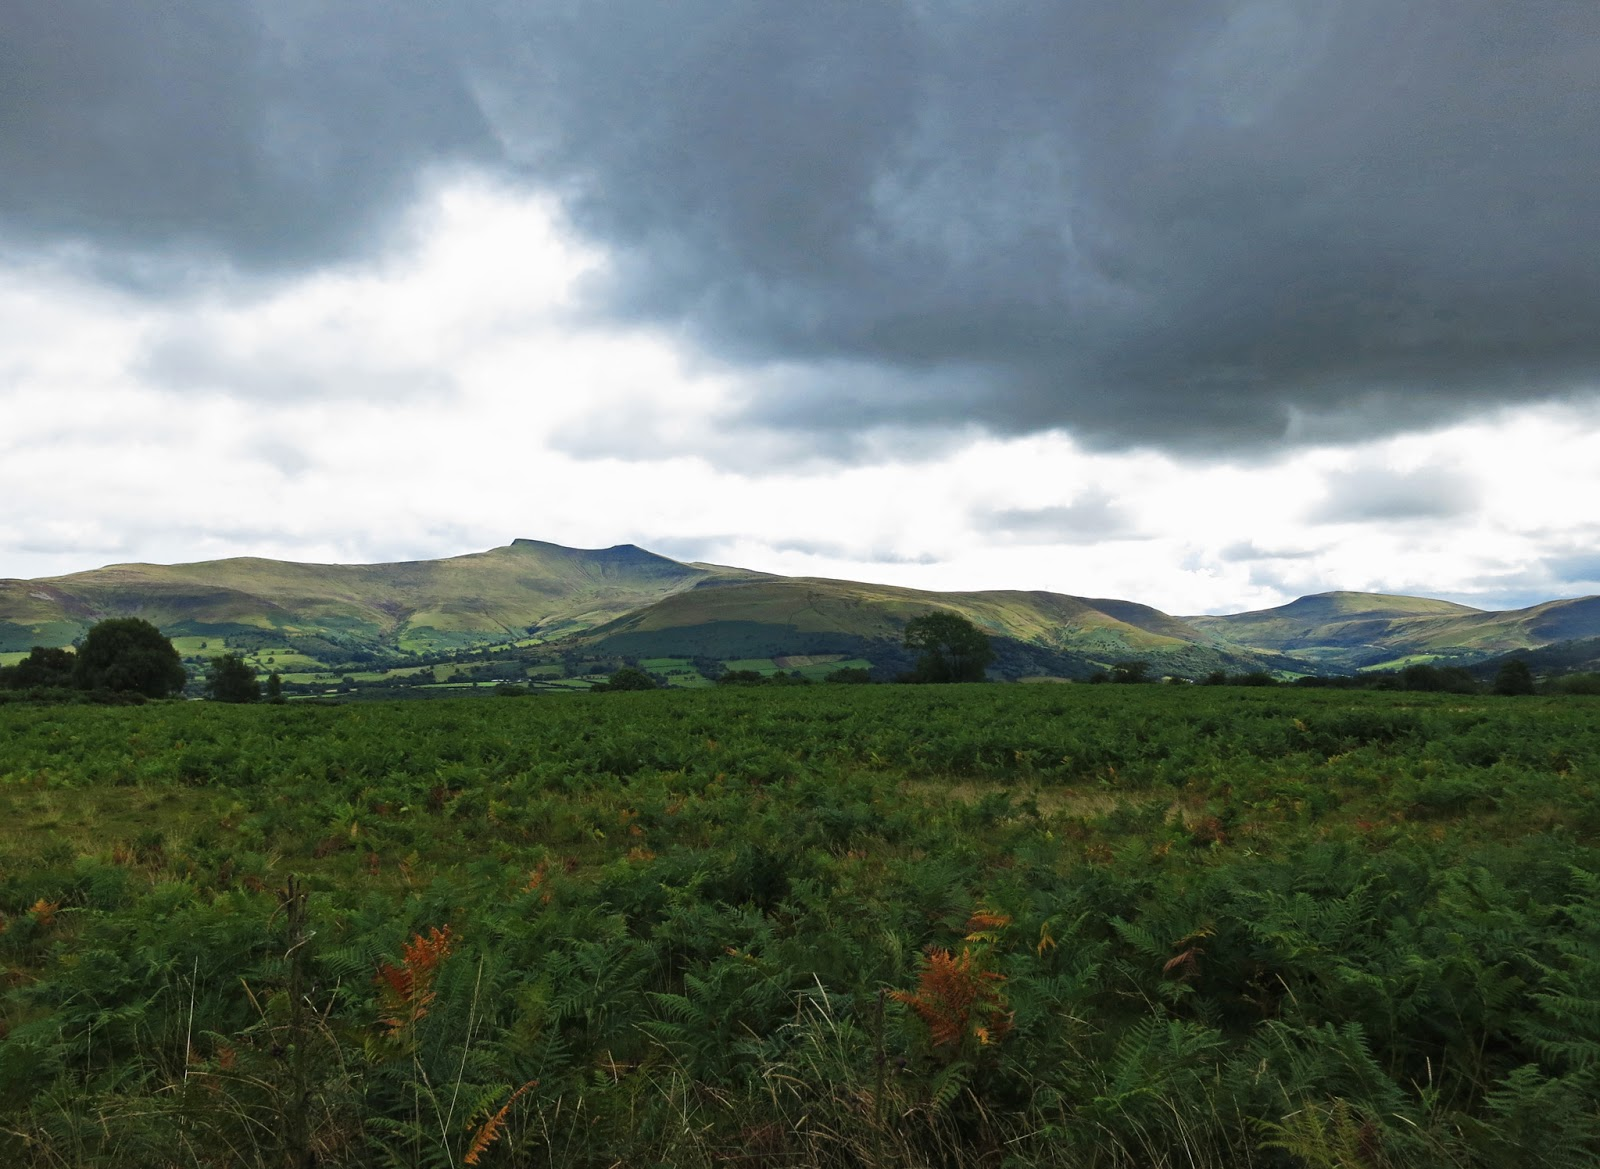 Hills in the Brecon Beacons National Park, Wales